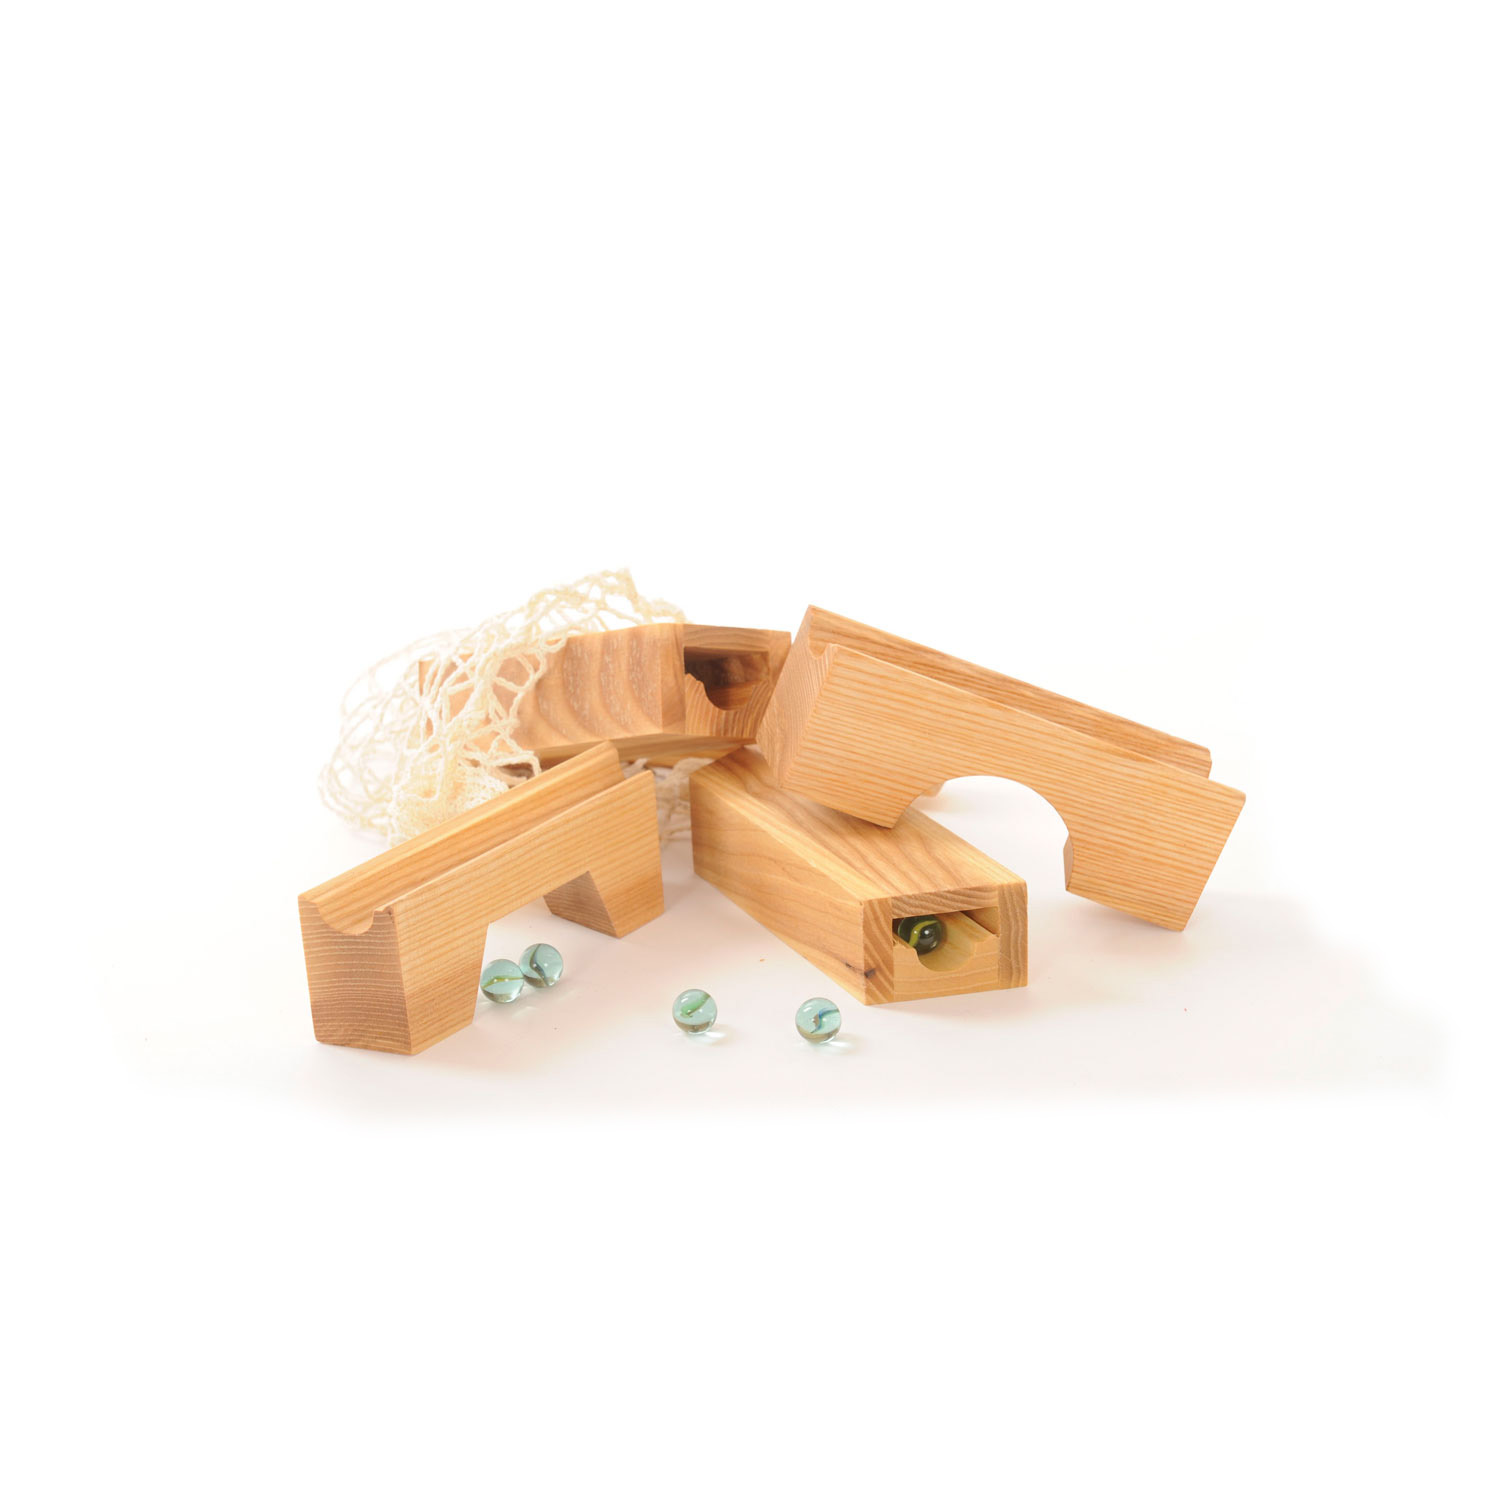 Nic Set to build your own Marble Run on Sand